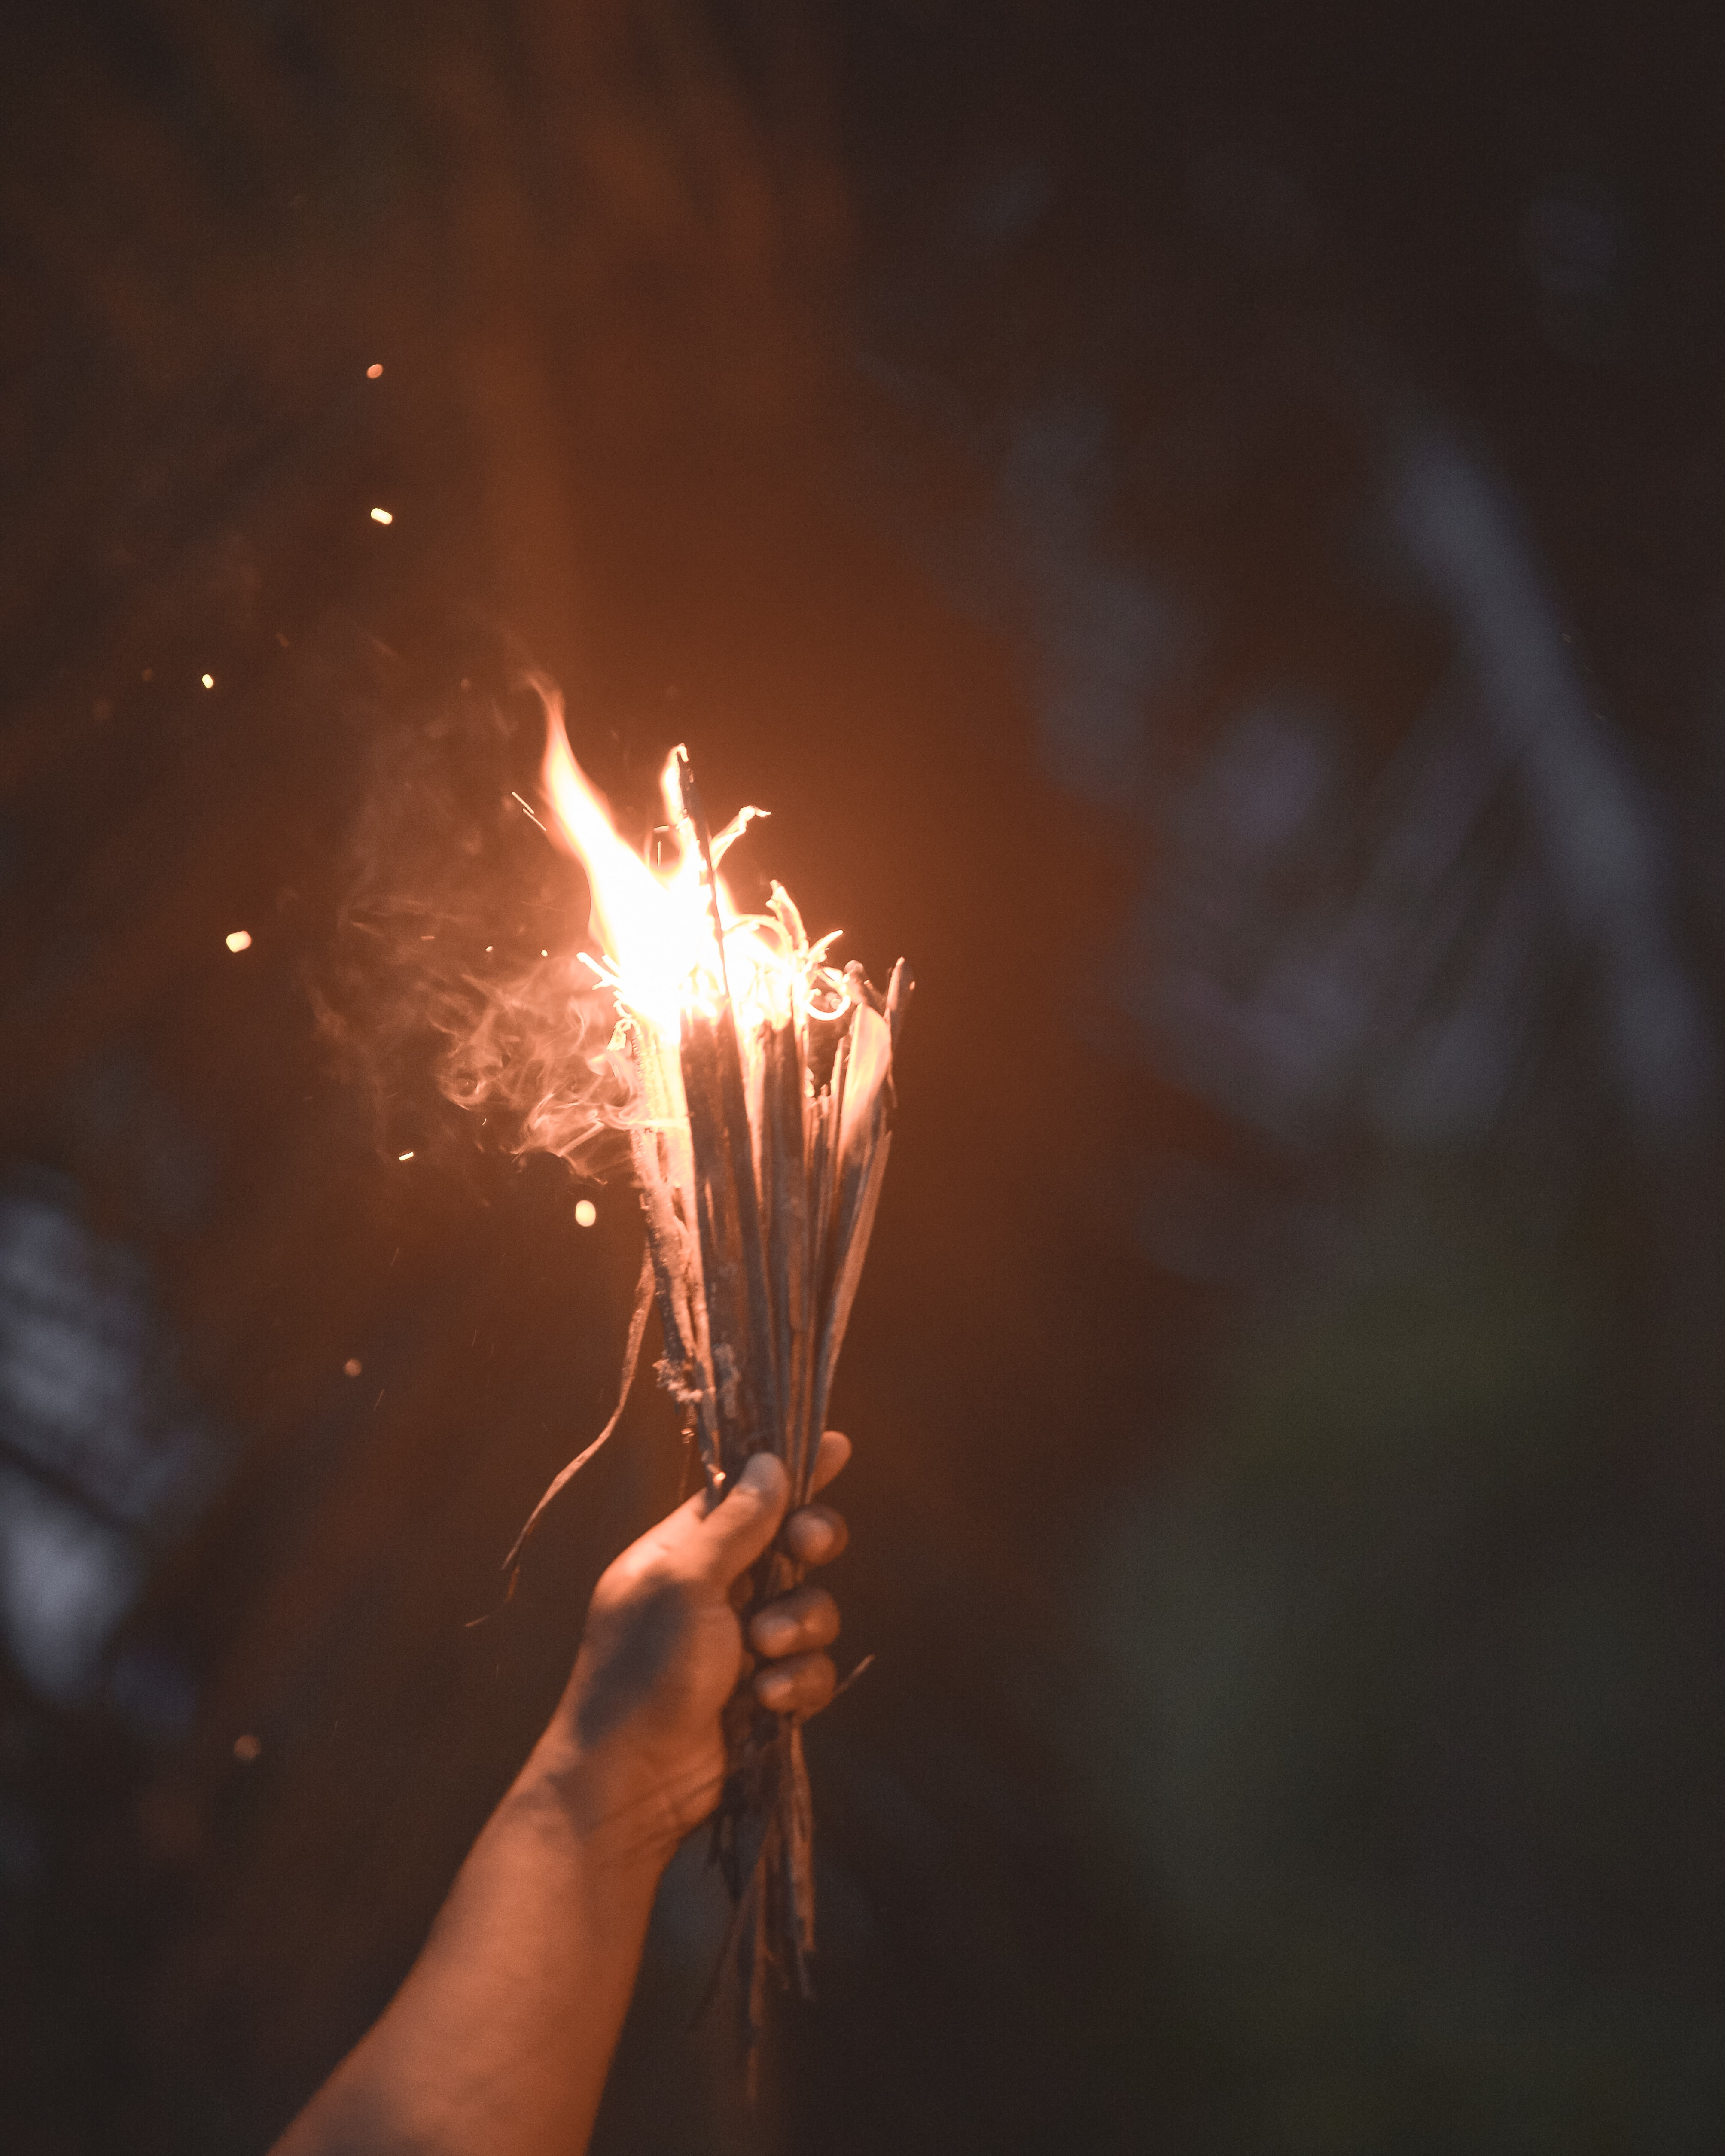 person holding burning sticks